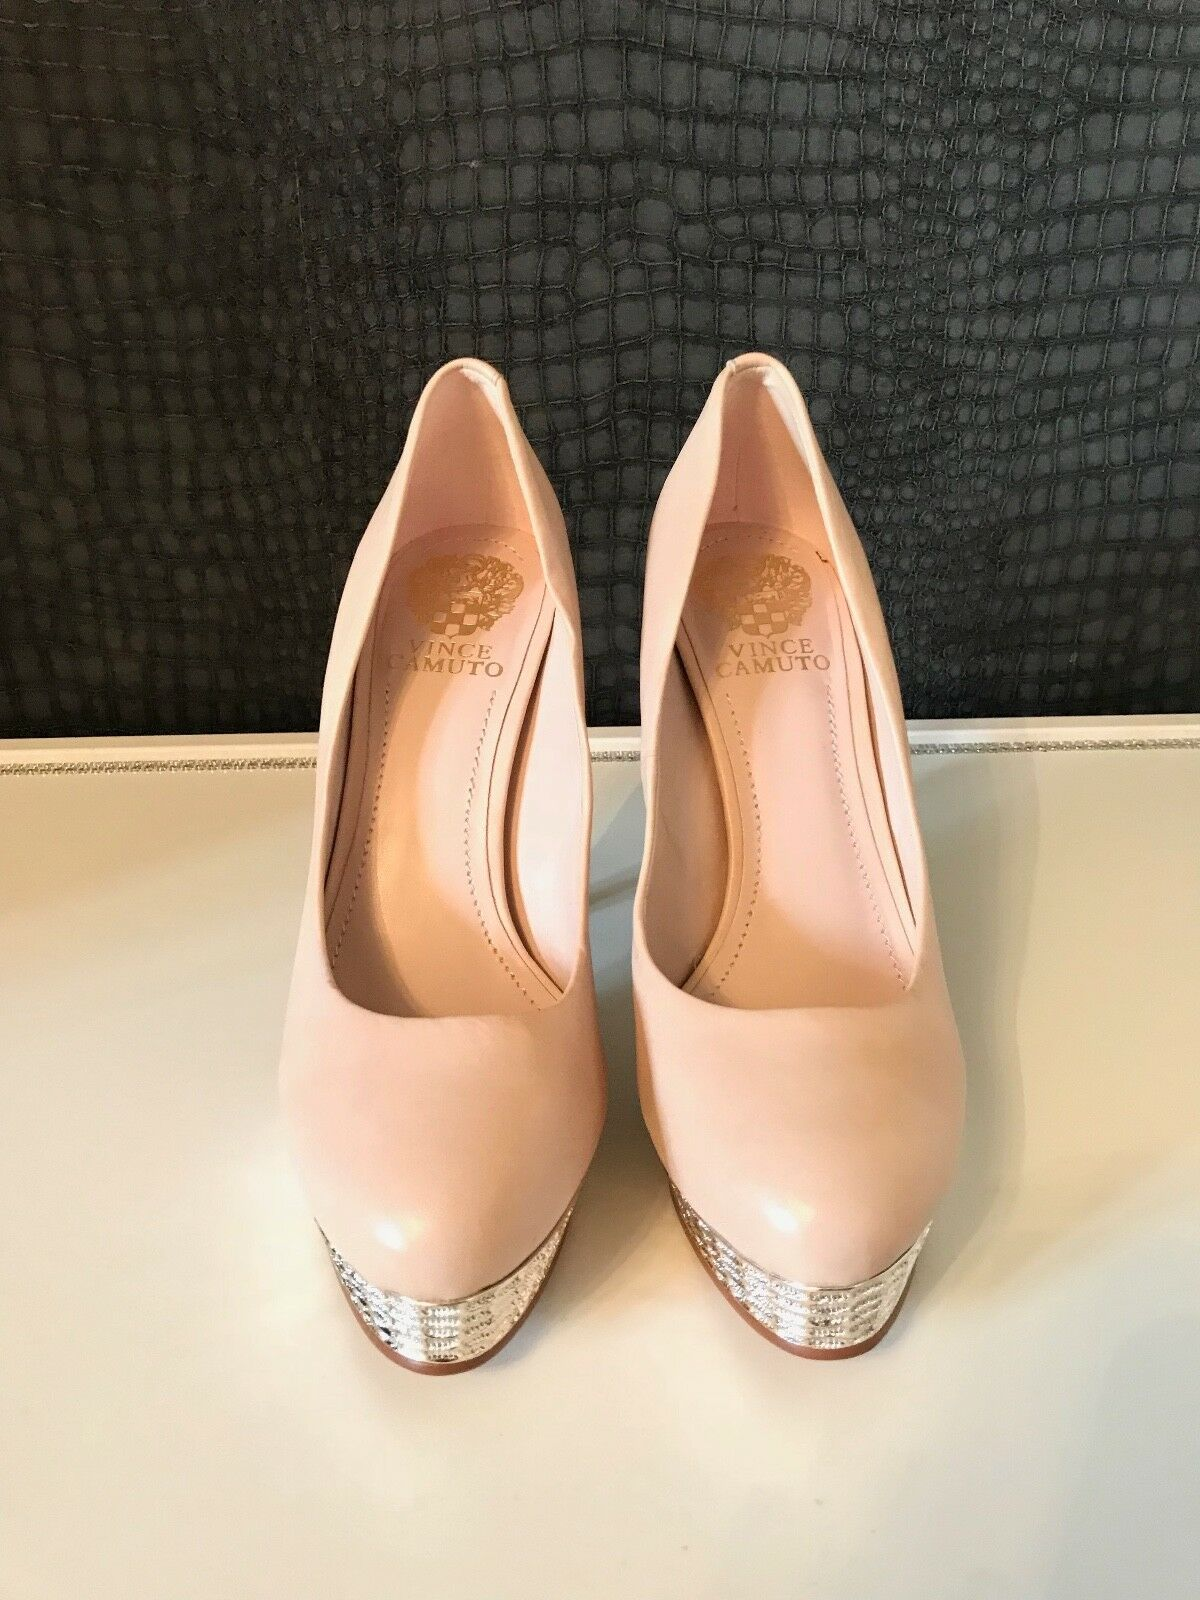 NEW WITHOUT WITHOUT WITHOUT BOX - VINCE CAMUTO NUDE & Silber schuhe - UK 5 38 828671